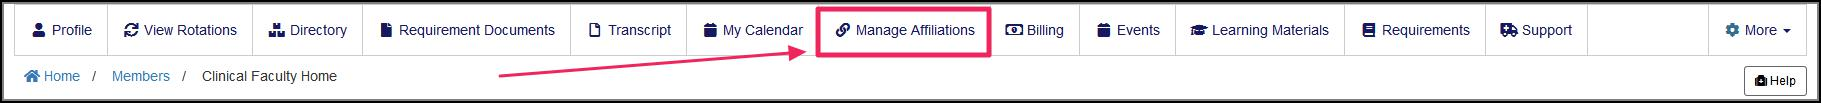 image member nav bar pointing to Manage Affiliations icon